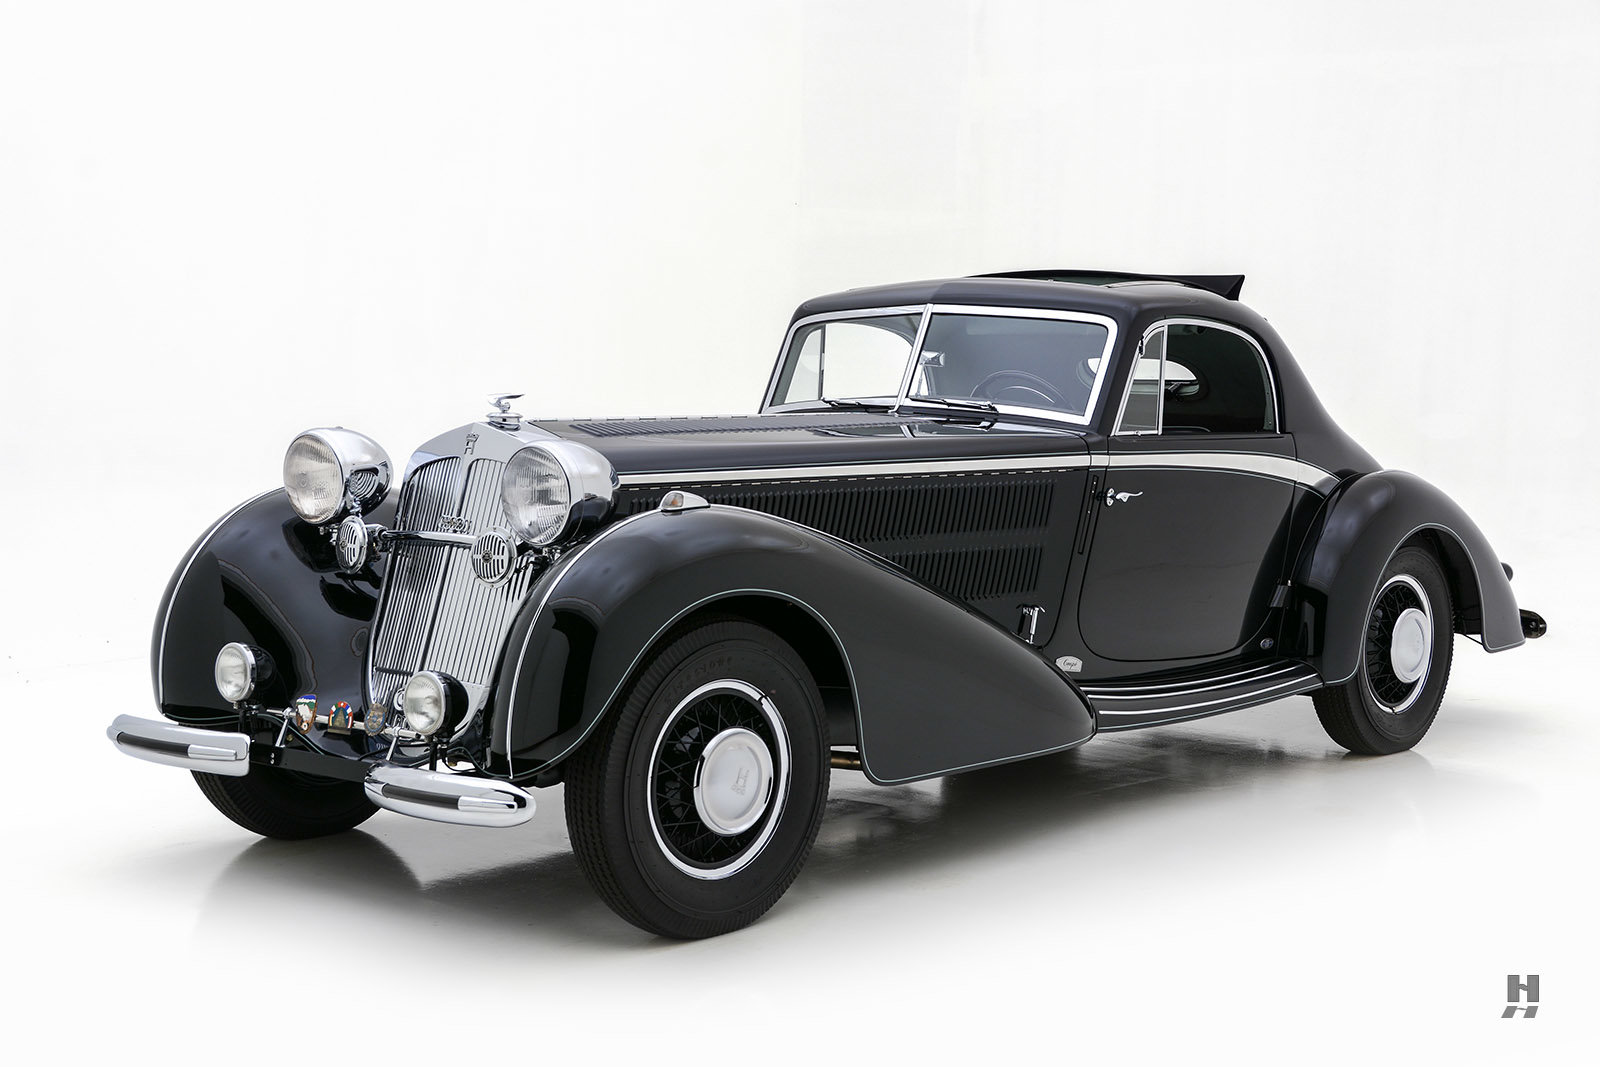 1937 HORCH 853 COUPE For Sale (picture 1 of 6)